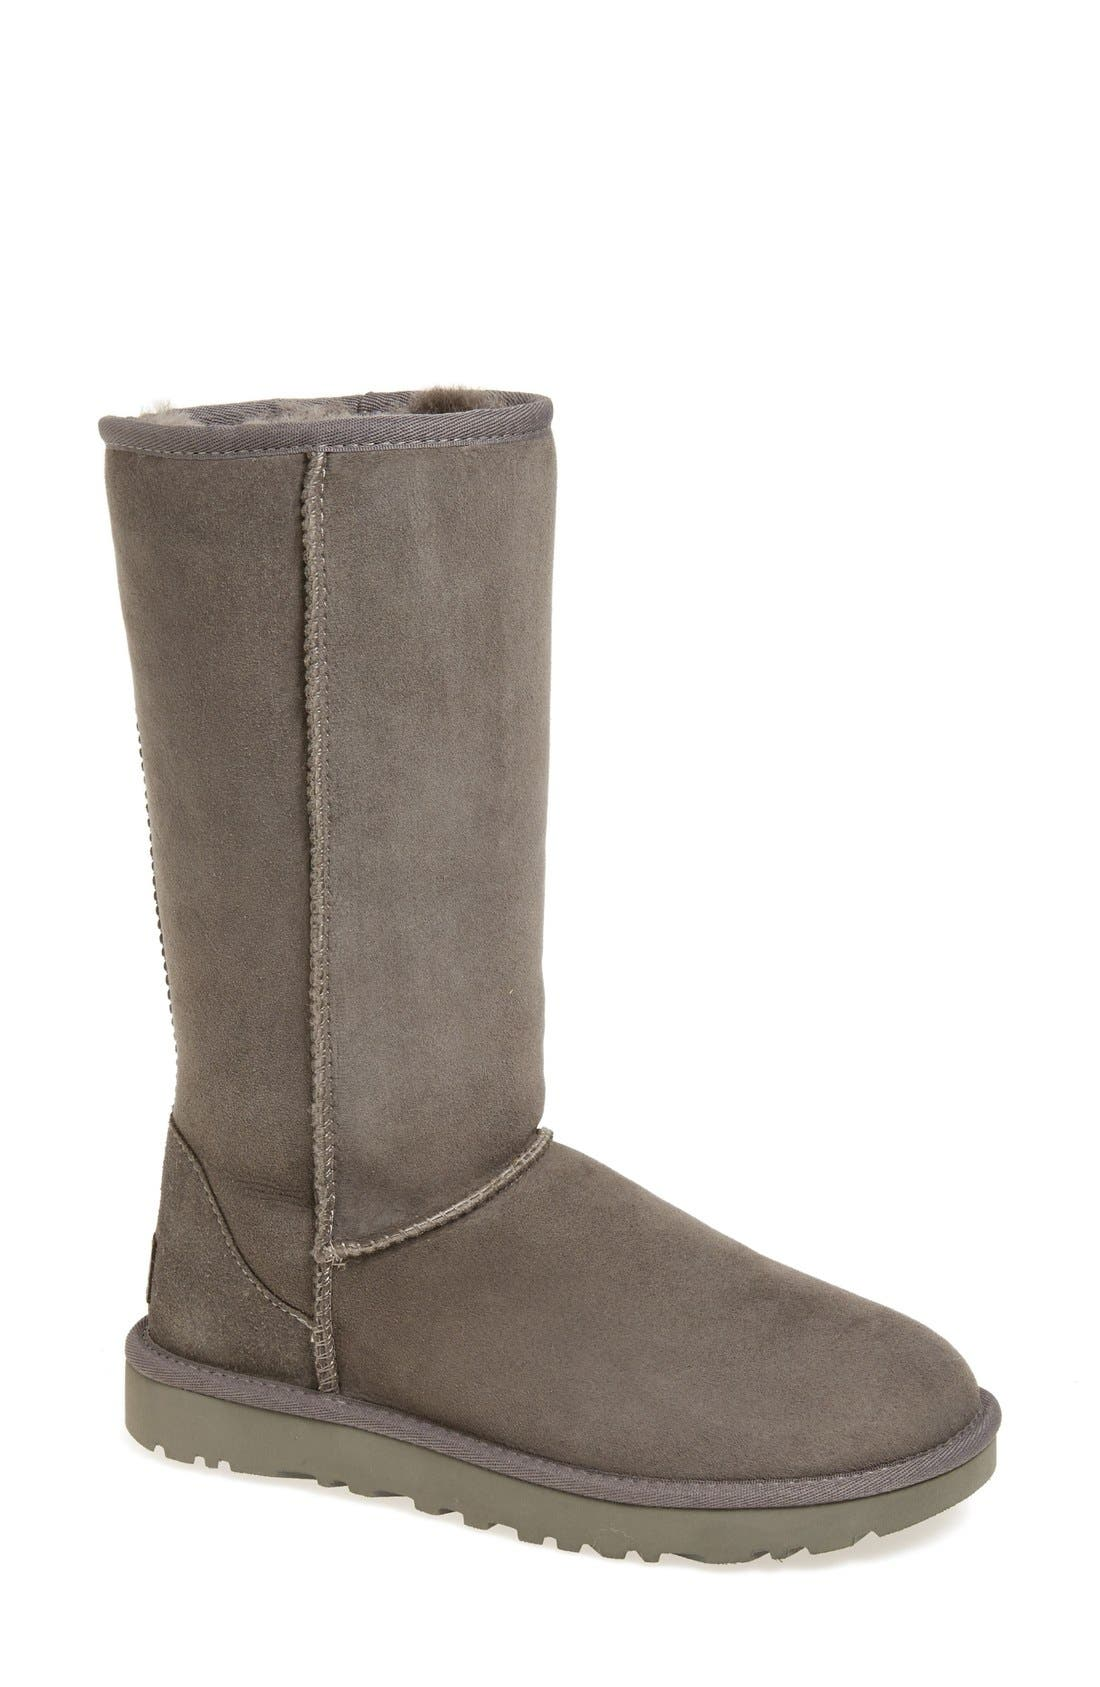 'Classic II' Genuine Shearling Lined Tall Boot,                             Main thumbnail 1, color,                             Grey Suede